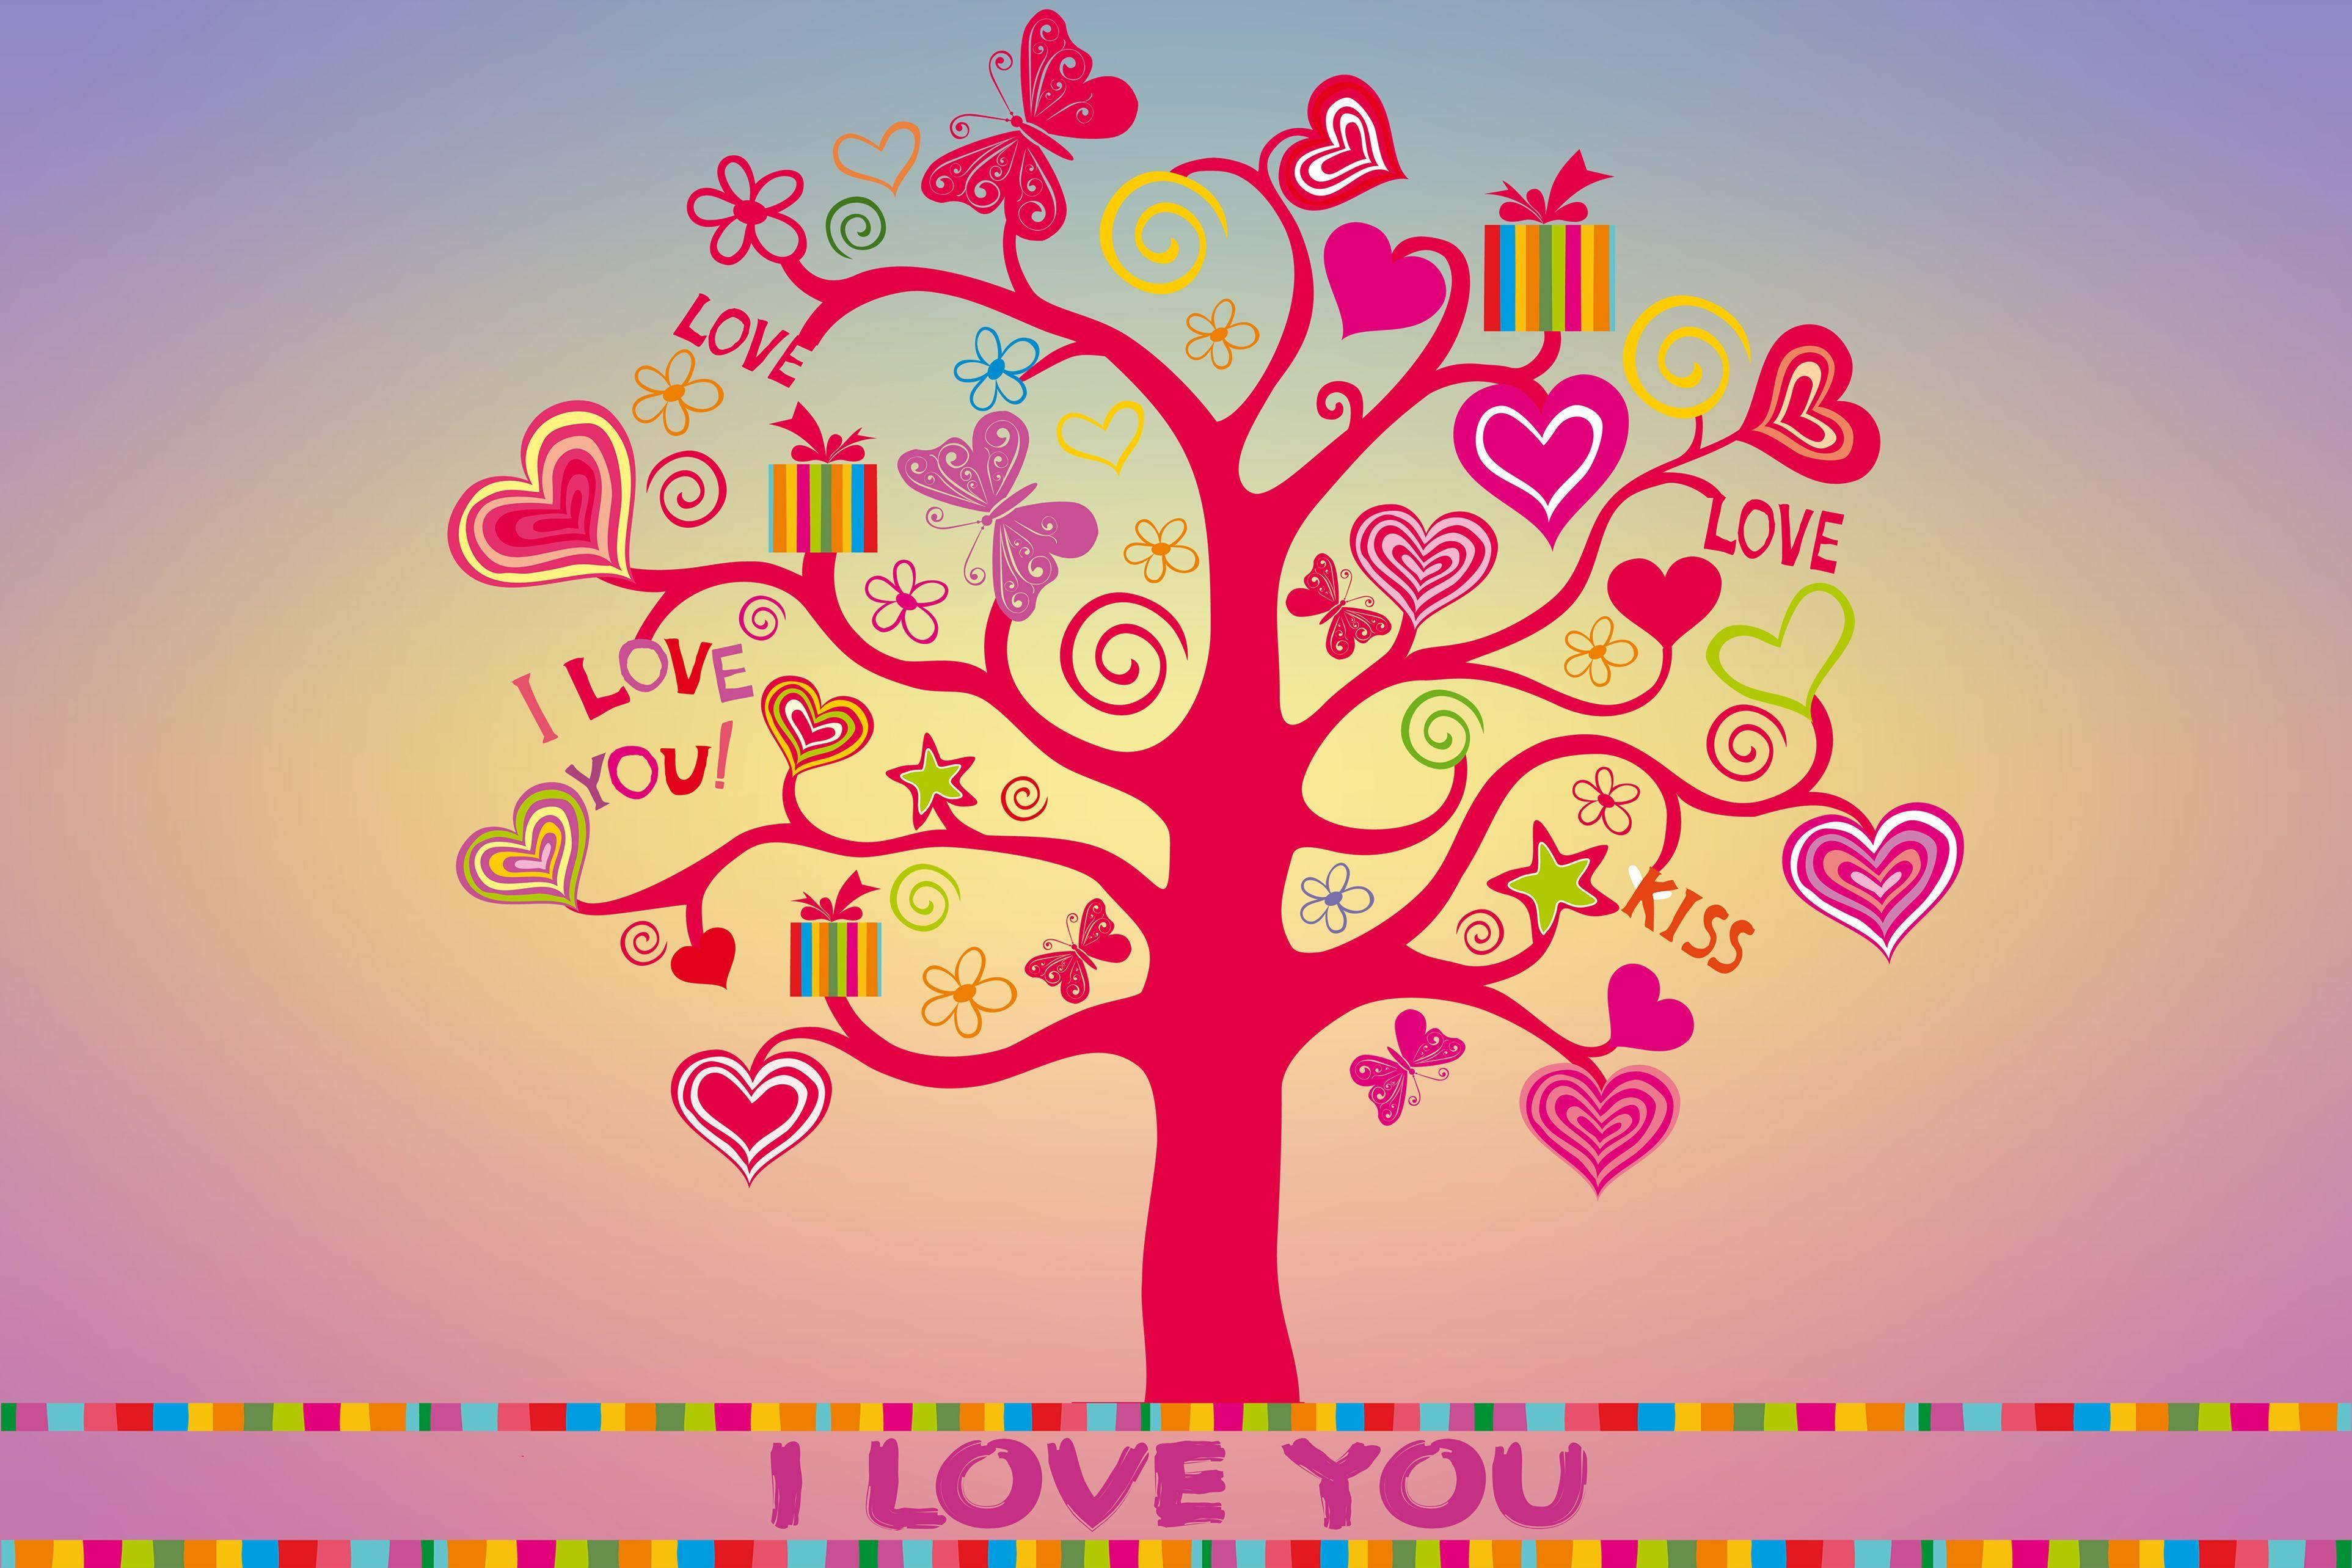 Love Wallpapers New 2016 : Love New Wallpapers 2016 - Wallpaper cave